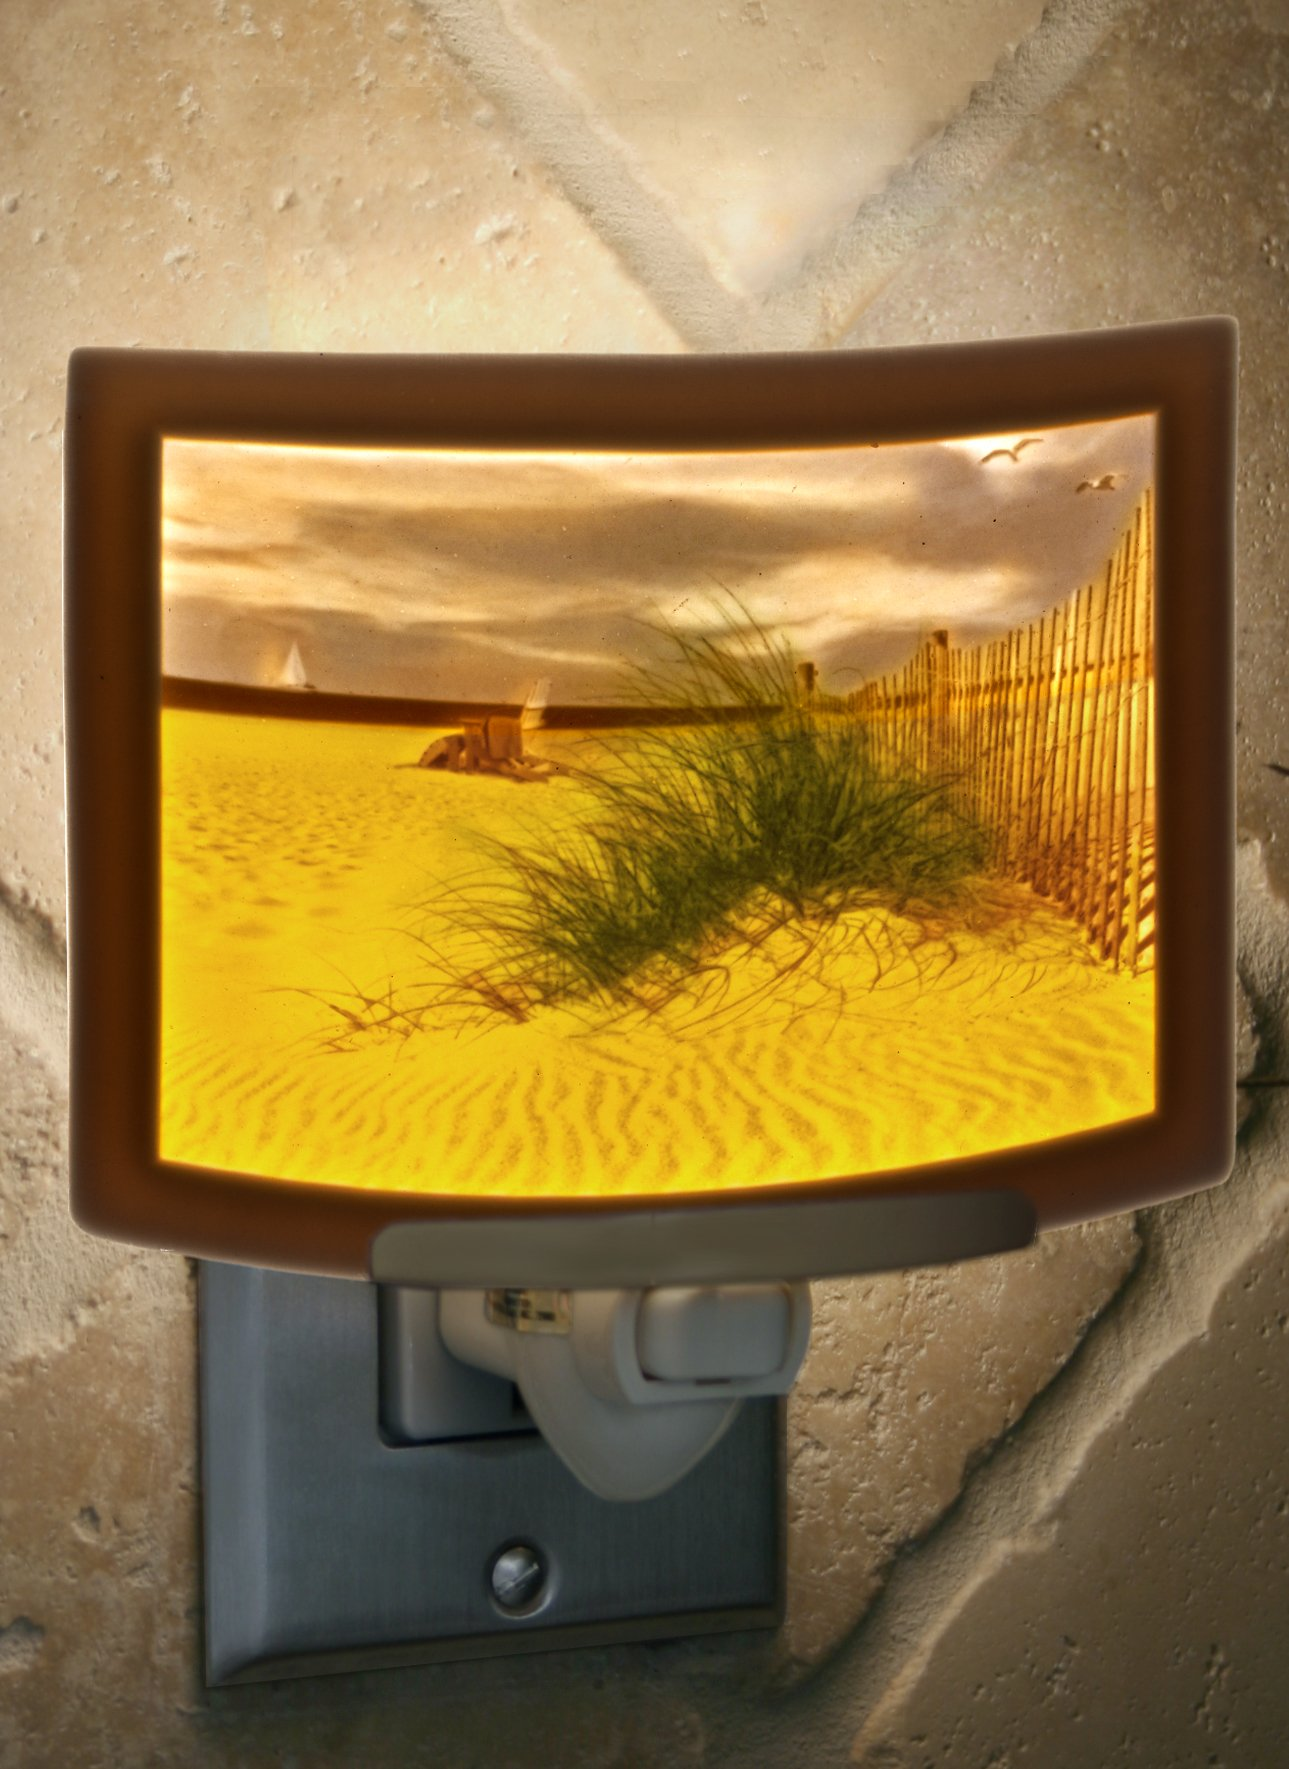 Balmy Beach- Colored Curved Porcelain Lithophane Night Light by The Porcelain Garden (Image #3)